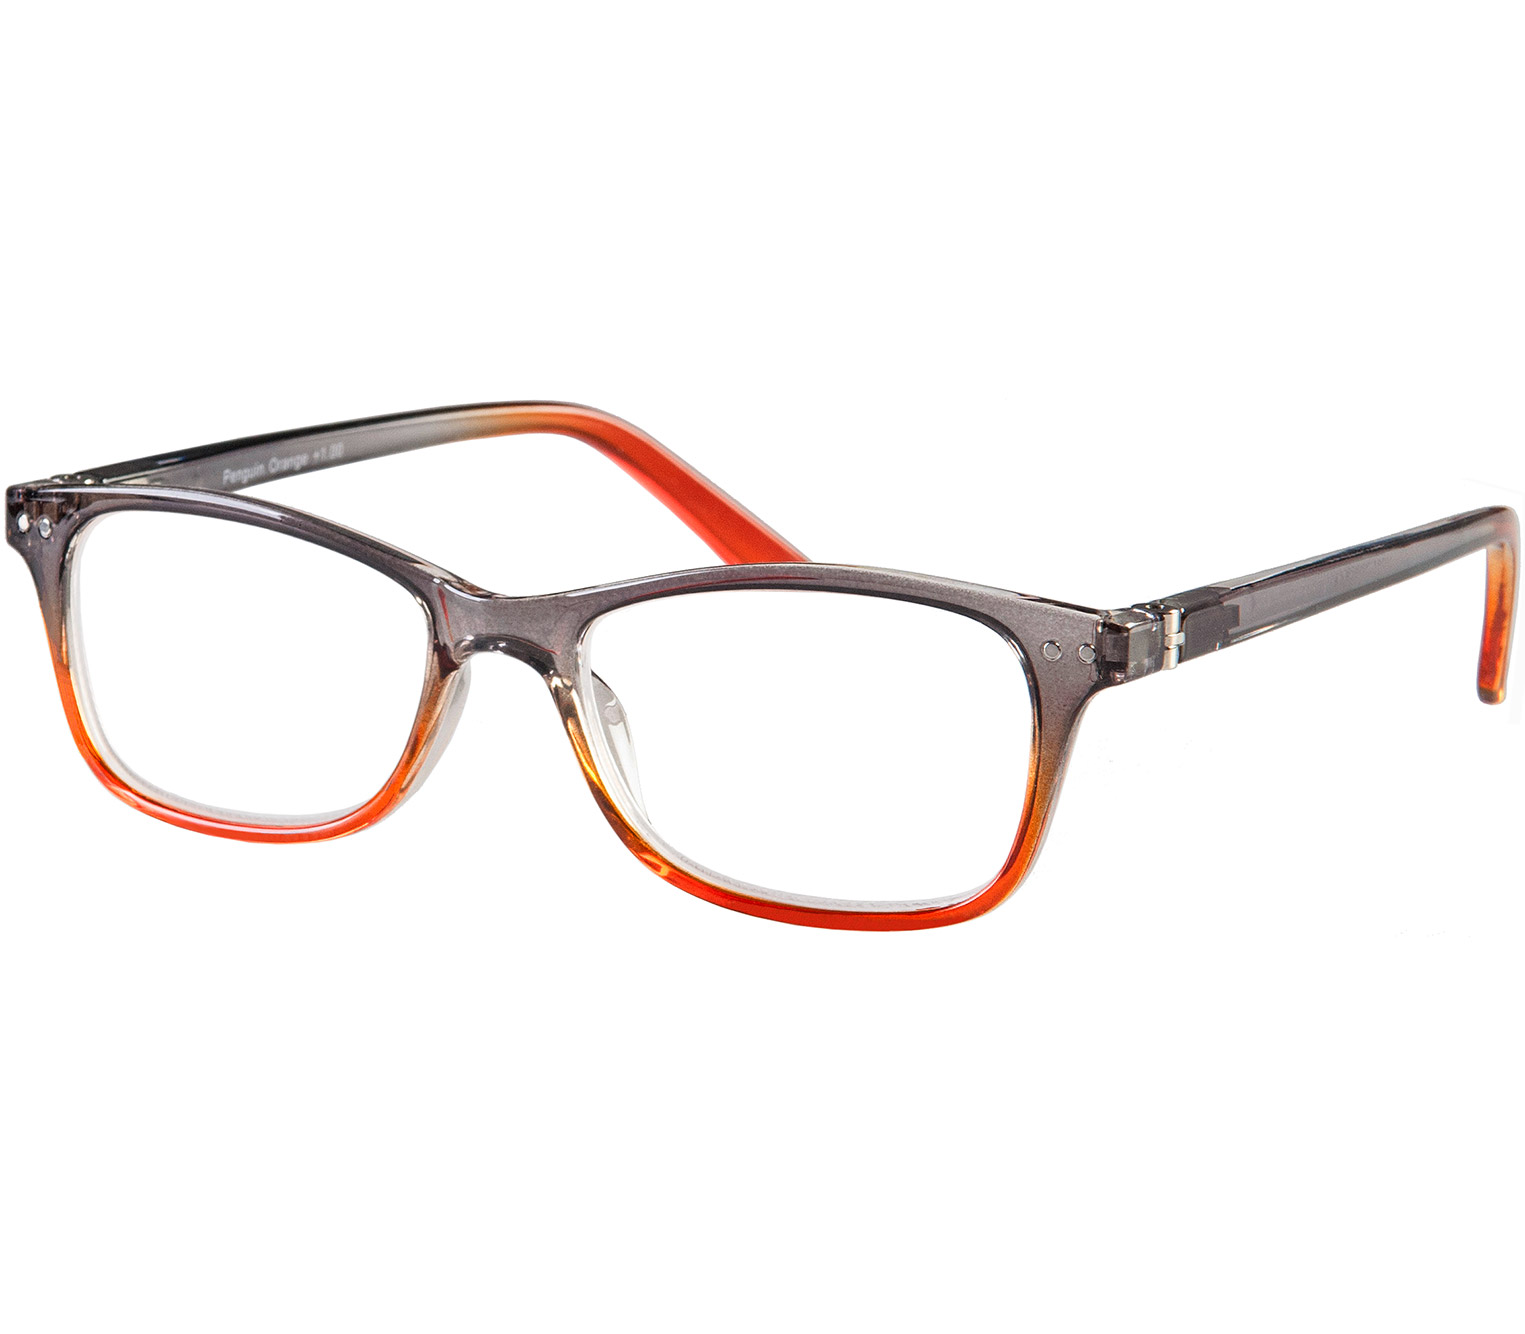 Main Image (Angle) - Penguin (Orange) Classic Reading Glasses